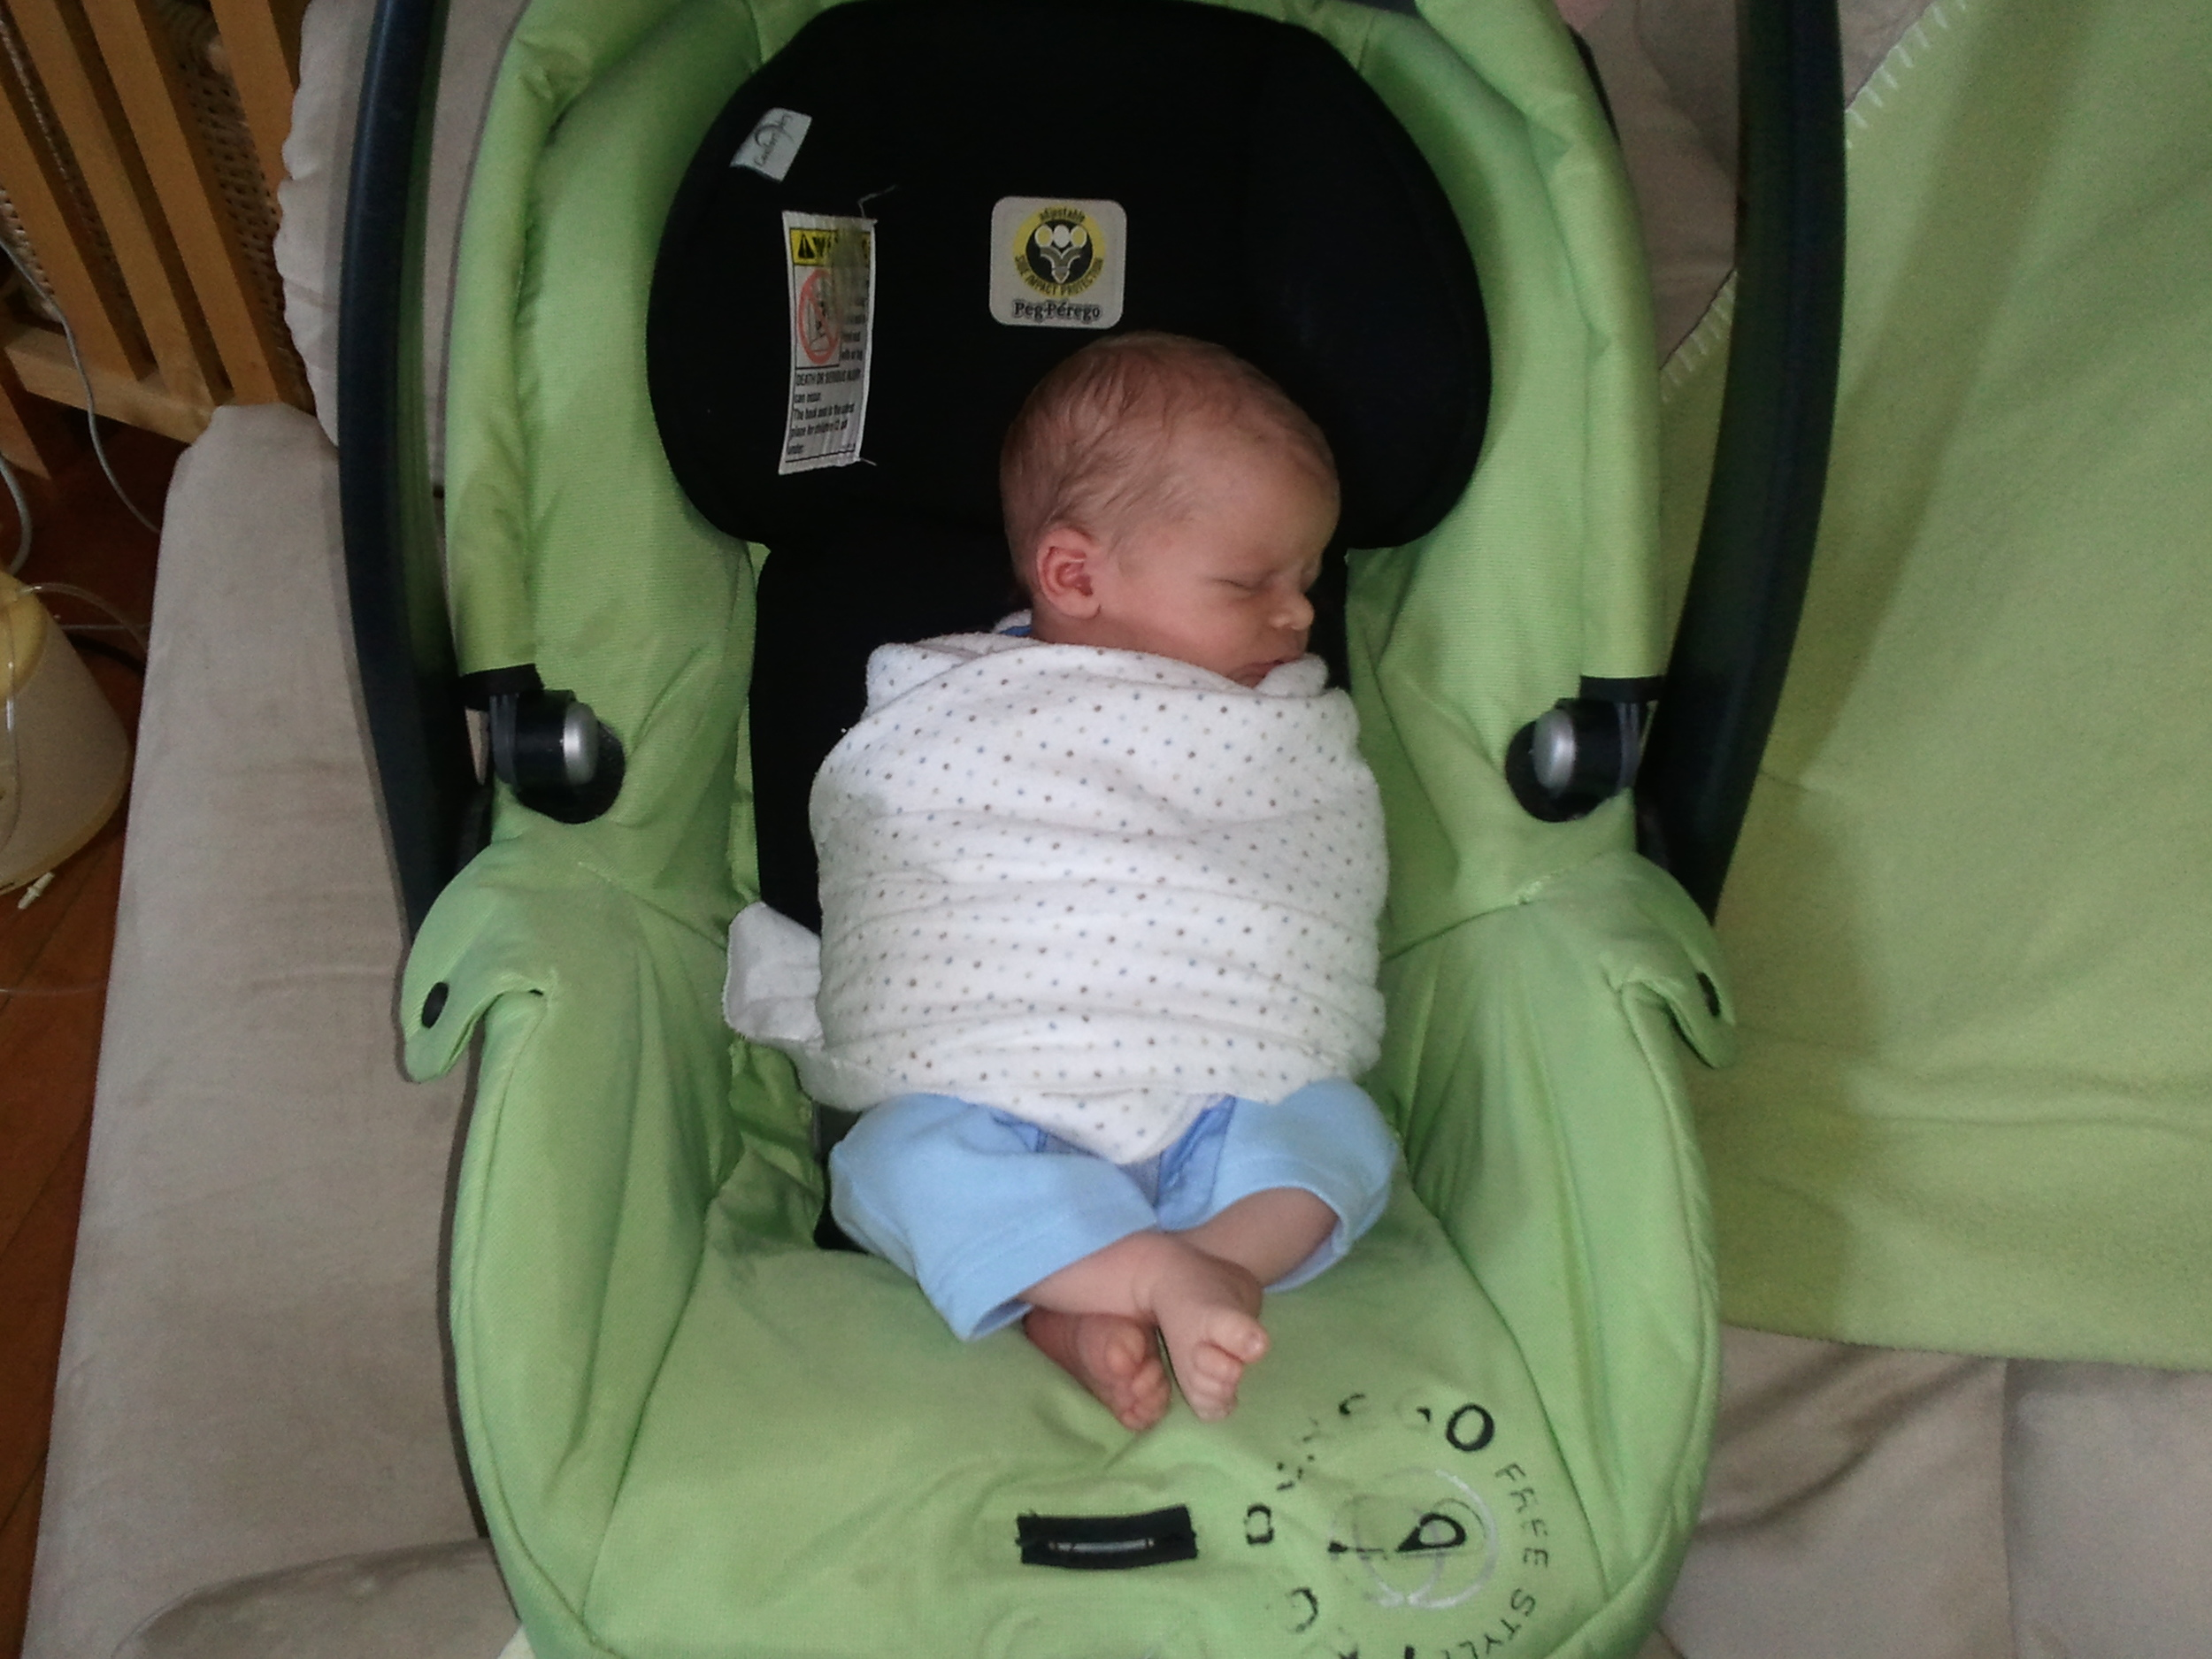 There Should Not Be A Lot Of Thickness Material Between The Baby And Car Seat Itself This Could Cause Problems In An Accident So It Is Important To